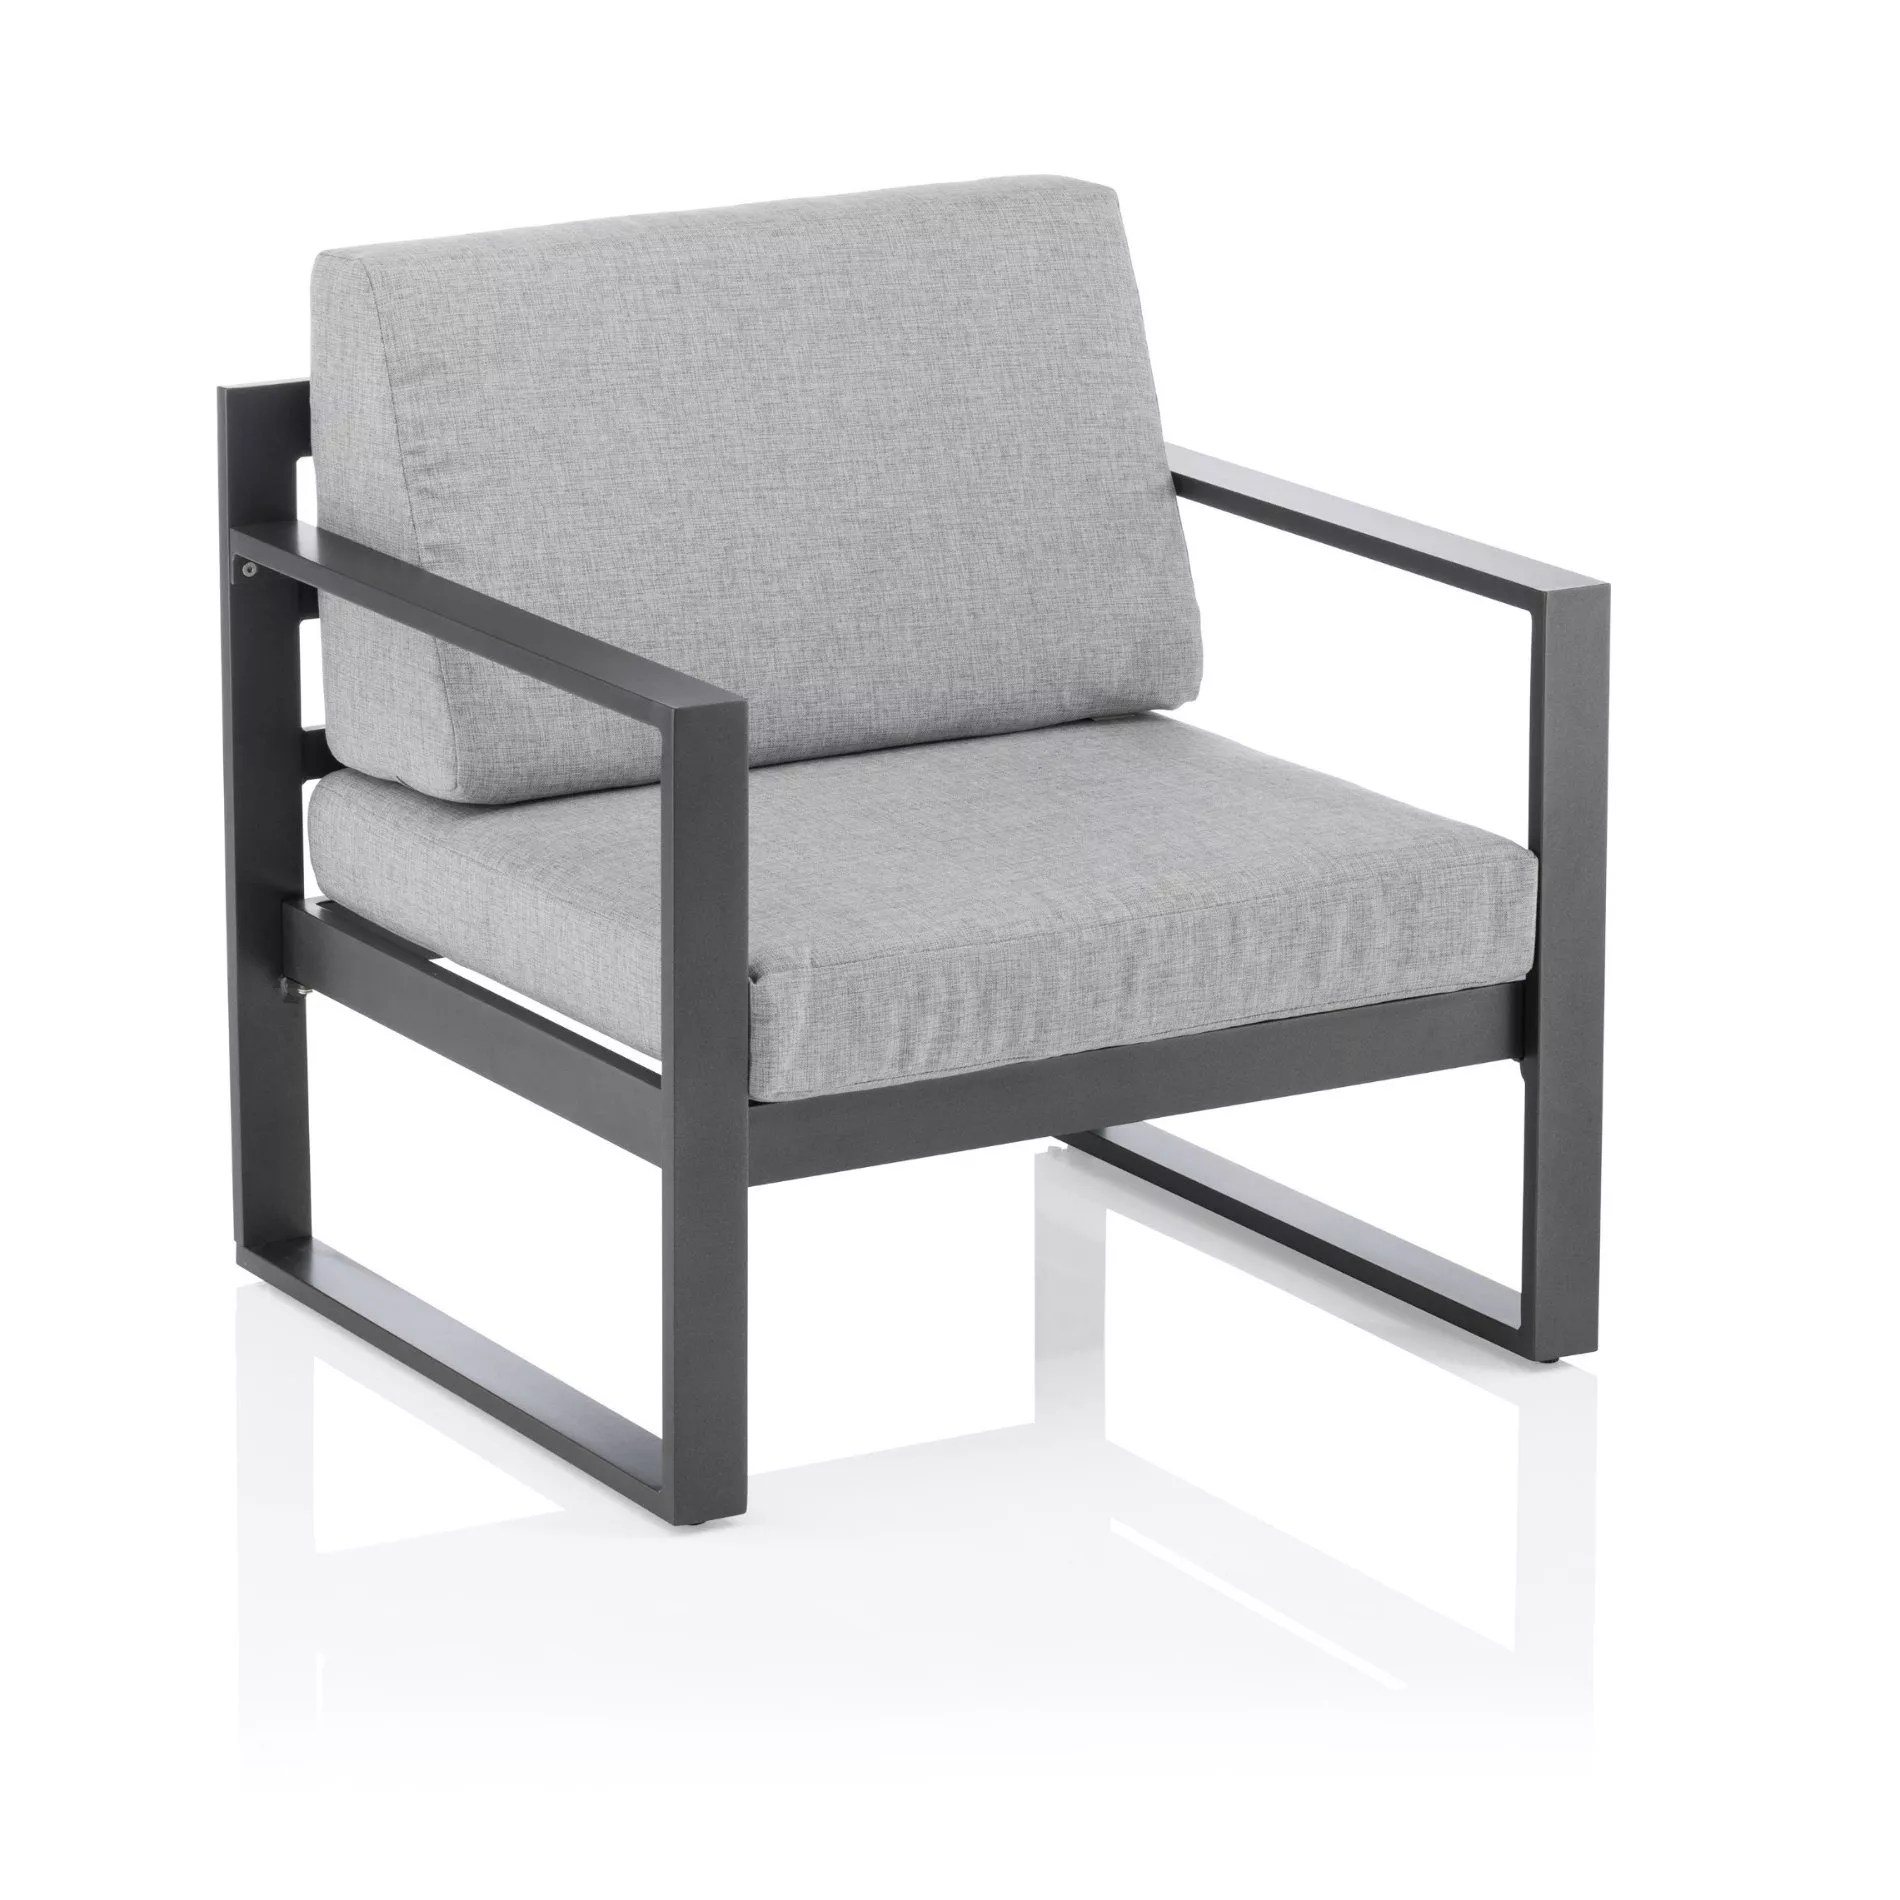 Lounge Sessel Stapelbar Lounge Sessel Terrasse Simple Terrassen Bali Roca Mit